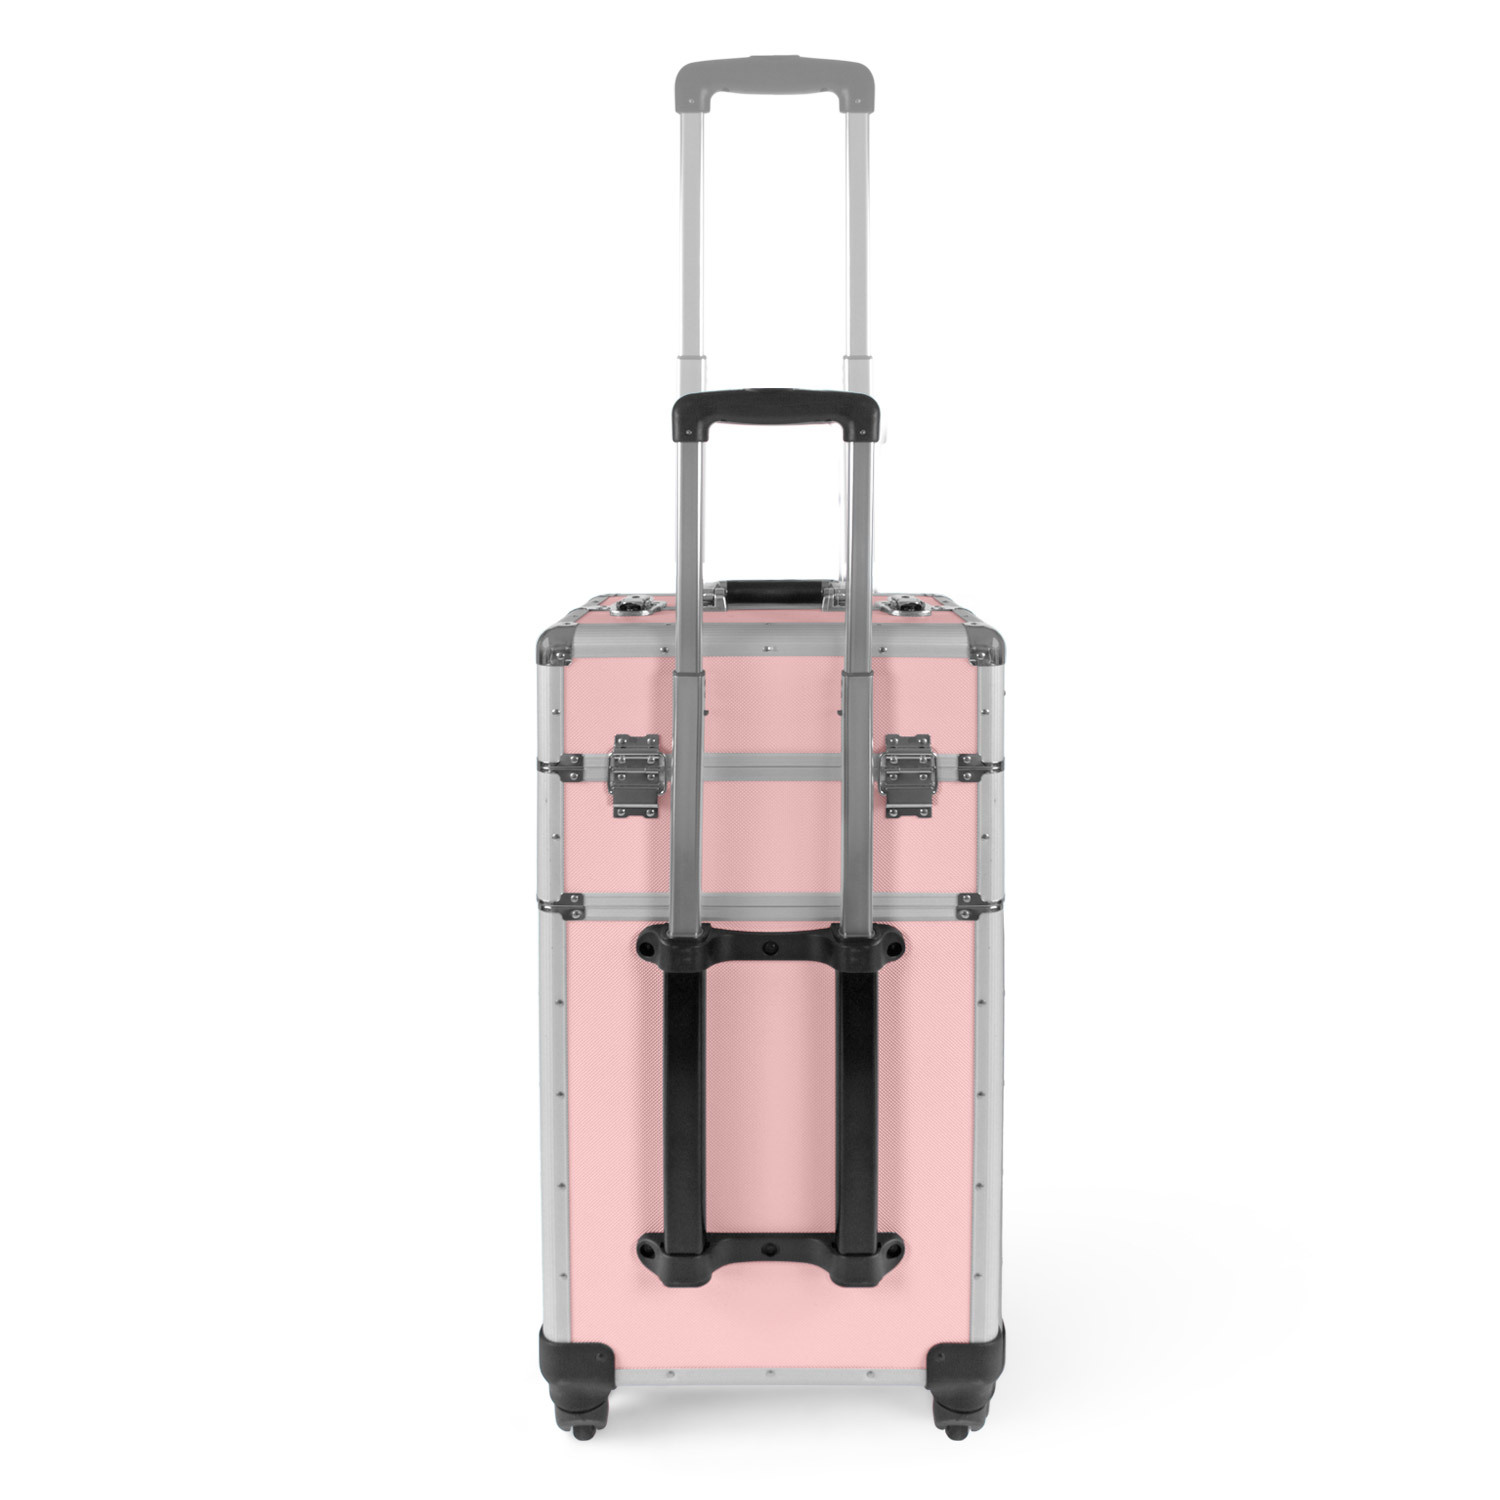 pilotenkoffer friseurkoffer rosa 75x37x24cm visagisten trolley werkzeug 4 rollen ebay. Black Bedroom Furniture Sets. Home Design Ideas